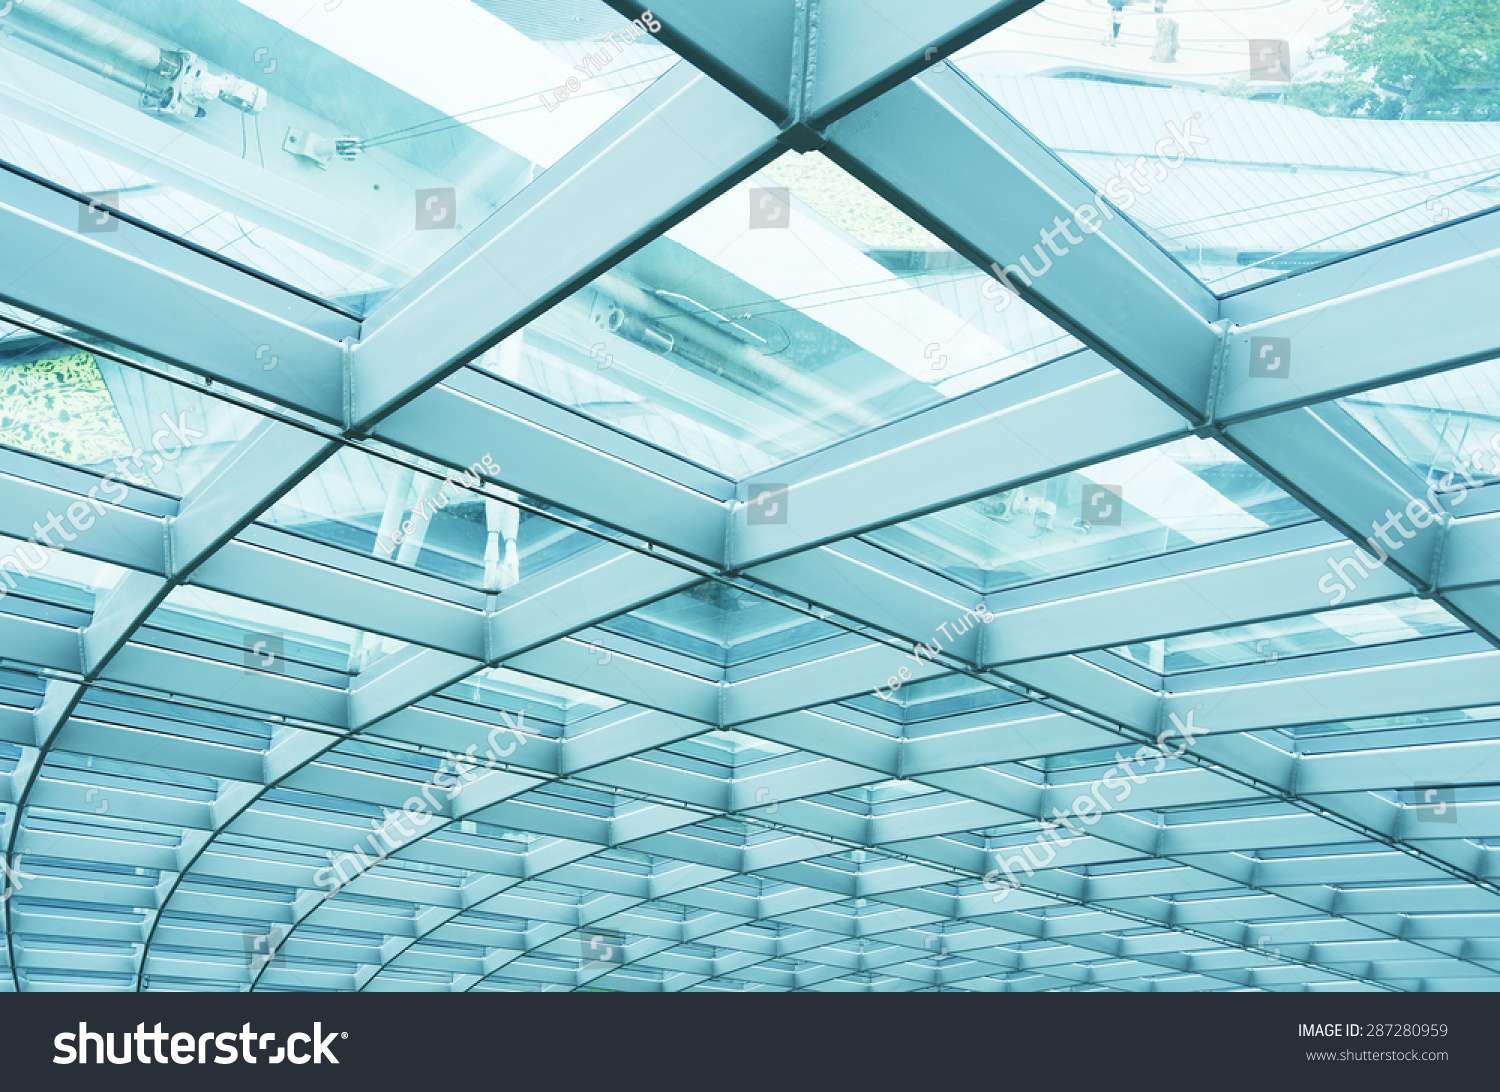 Building Abstract Modern Reinforced Steel Glass Stock